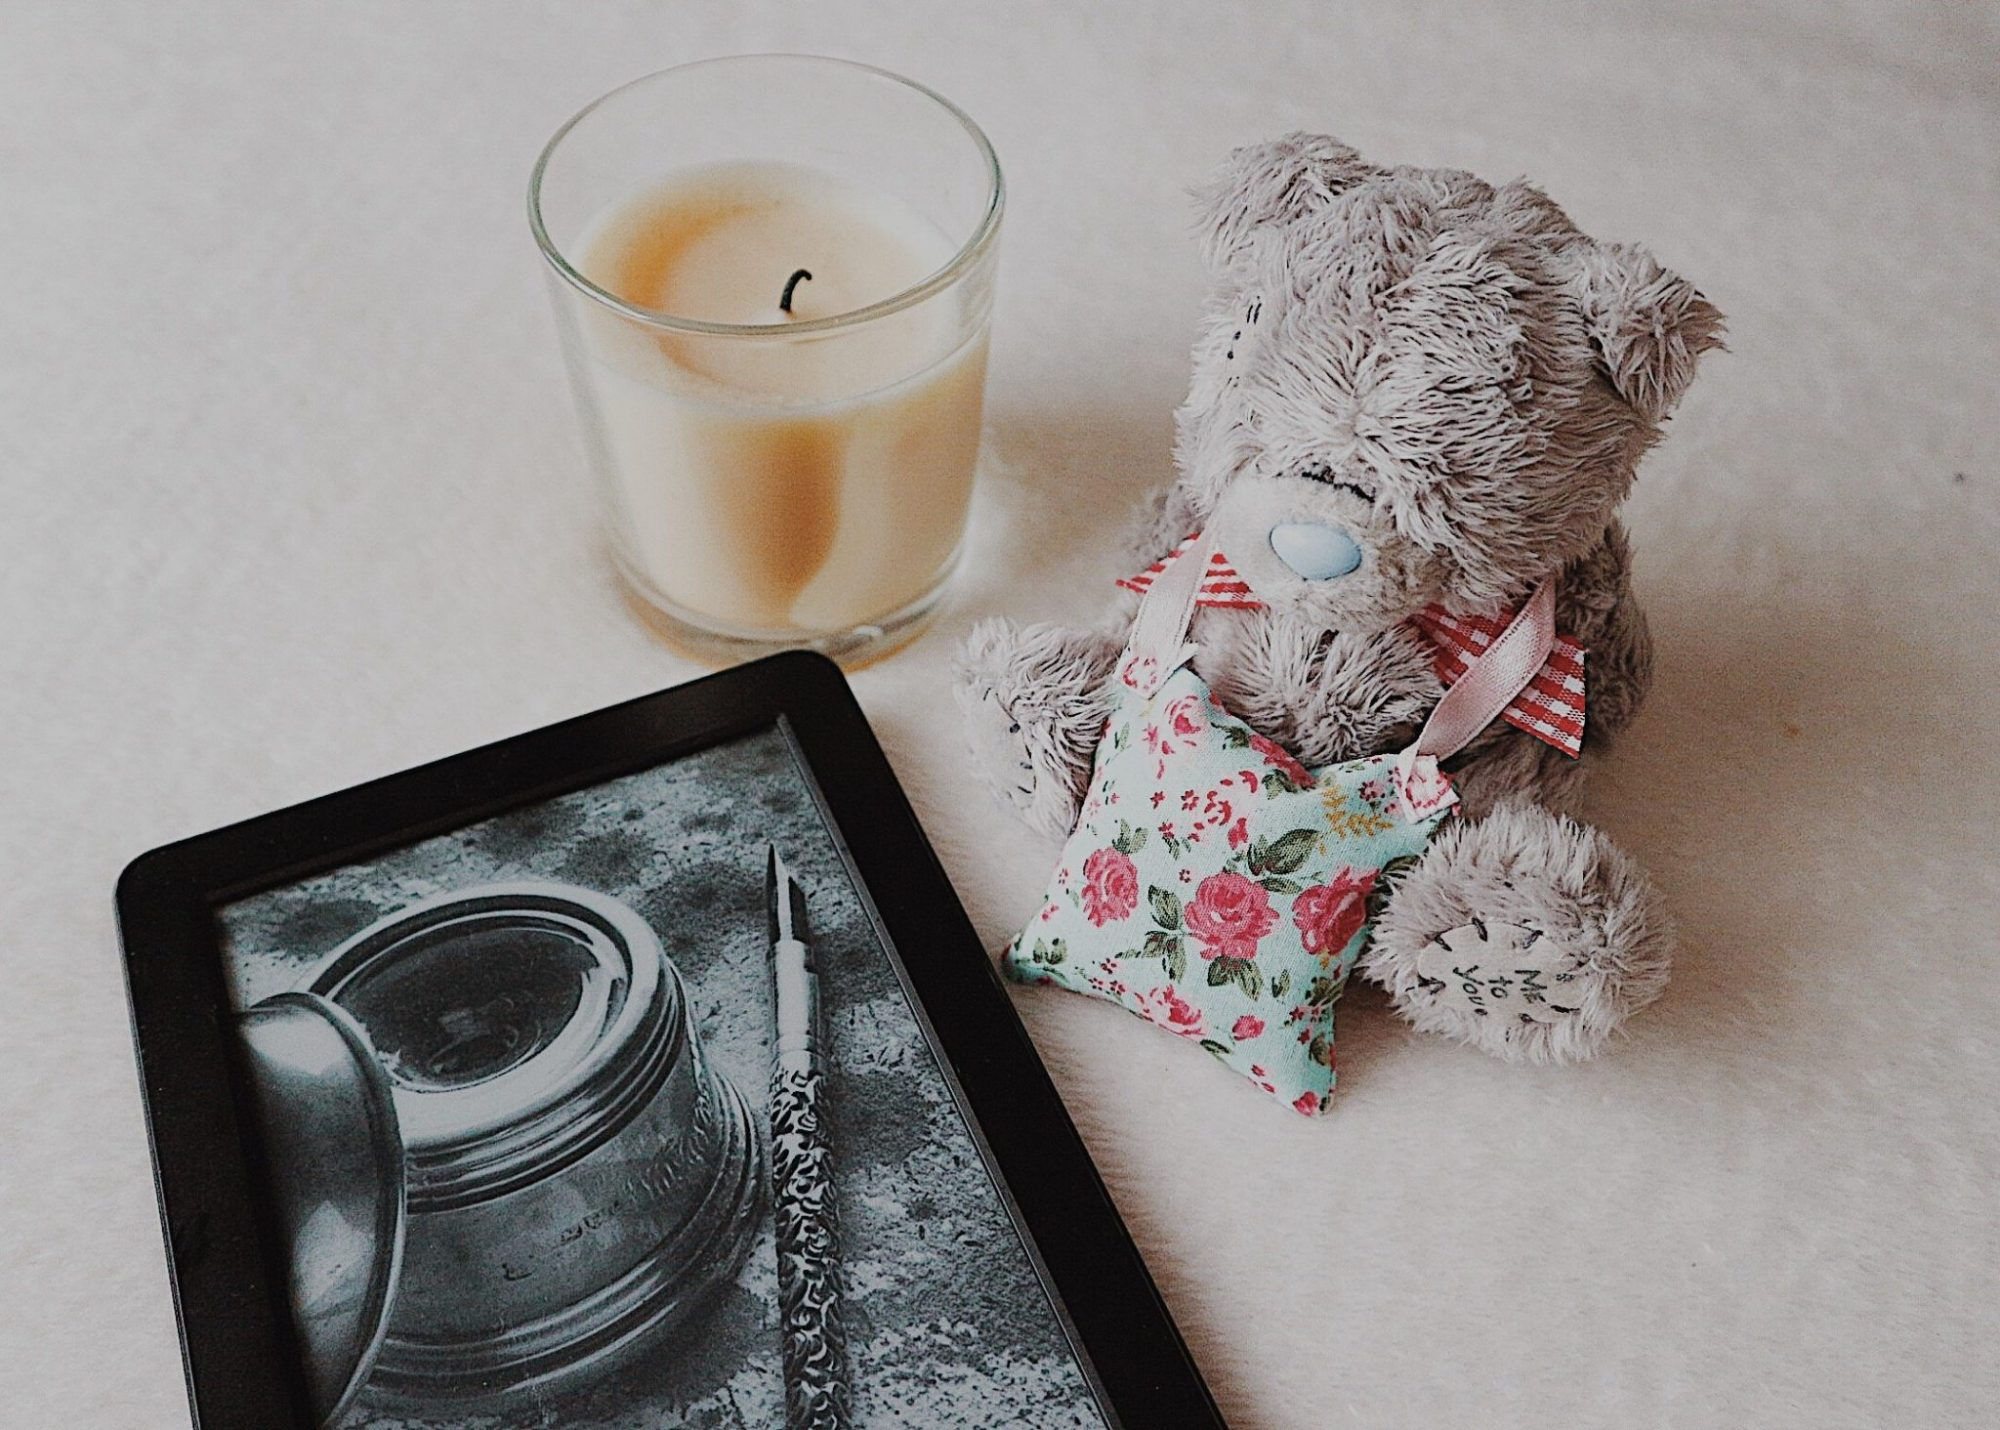 Kindle Paperwhite | Candle | Lavender Pouch